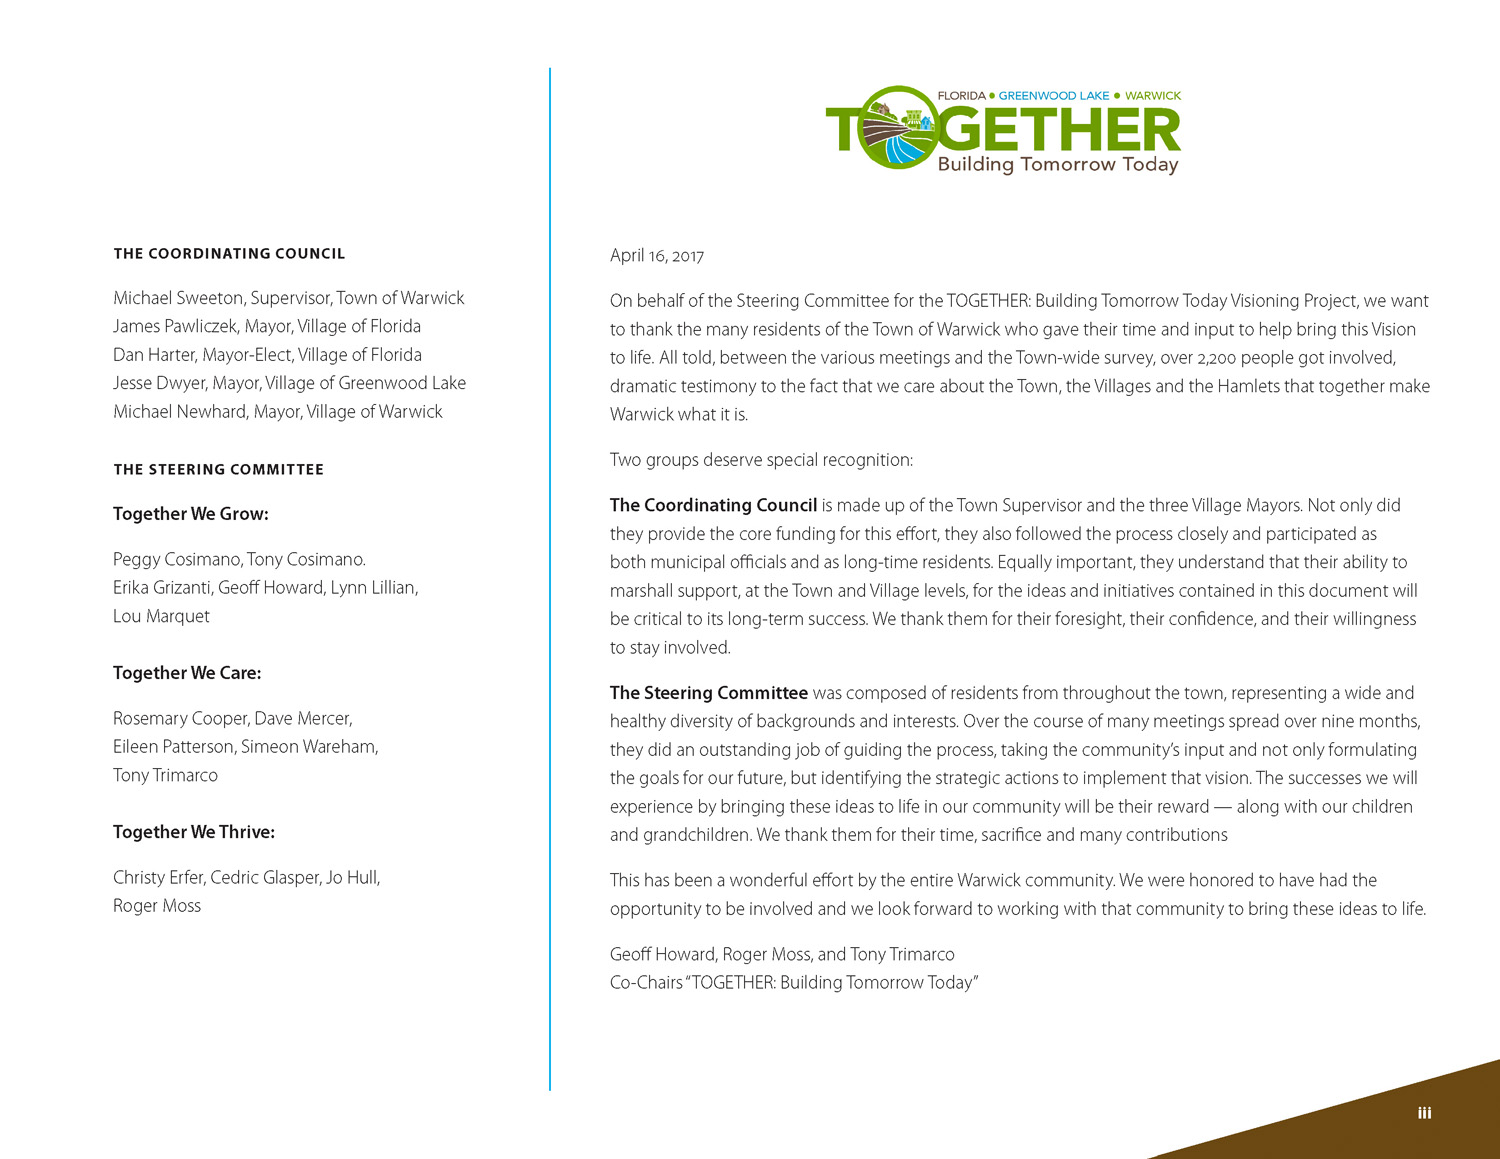 TOGETHER REPORT_Page_03.jpg